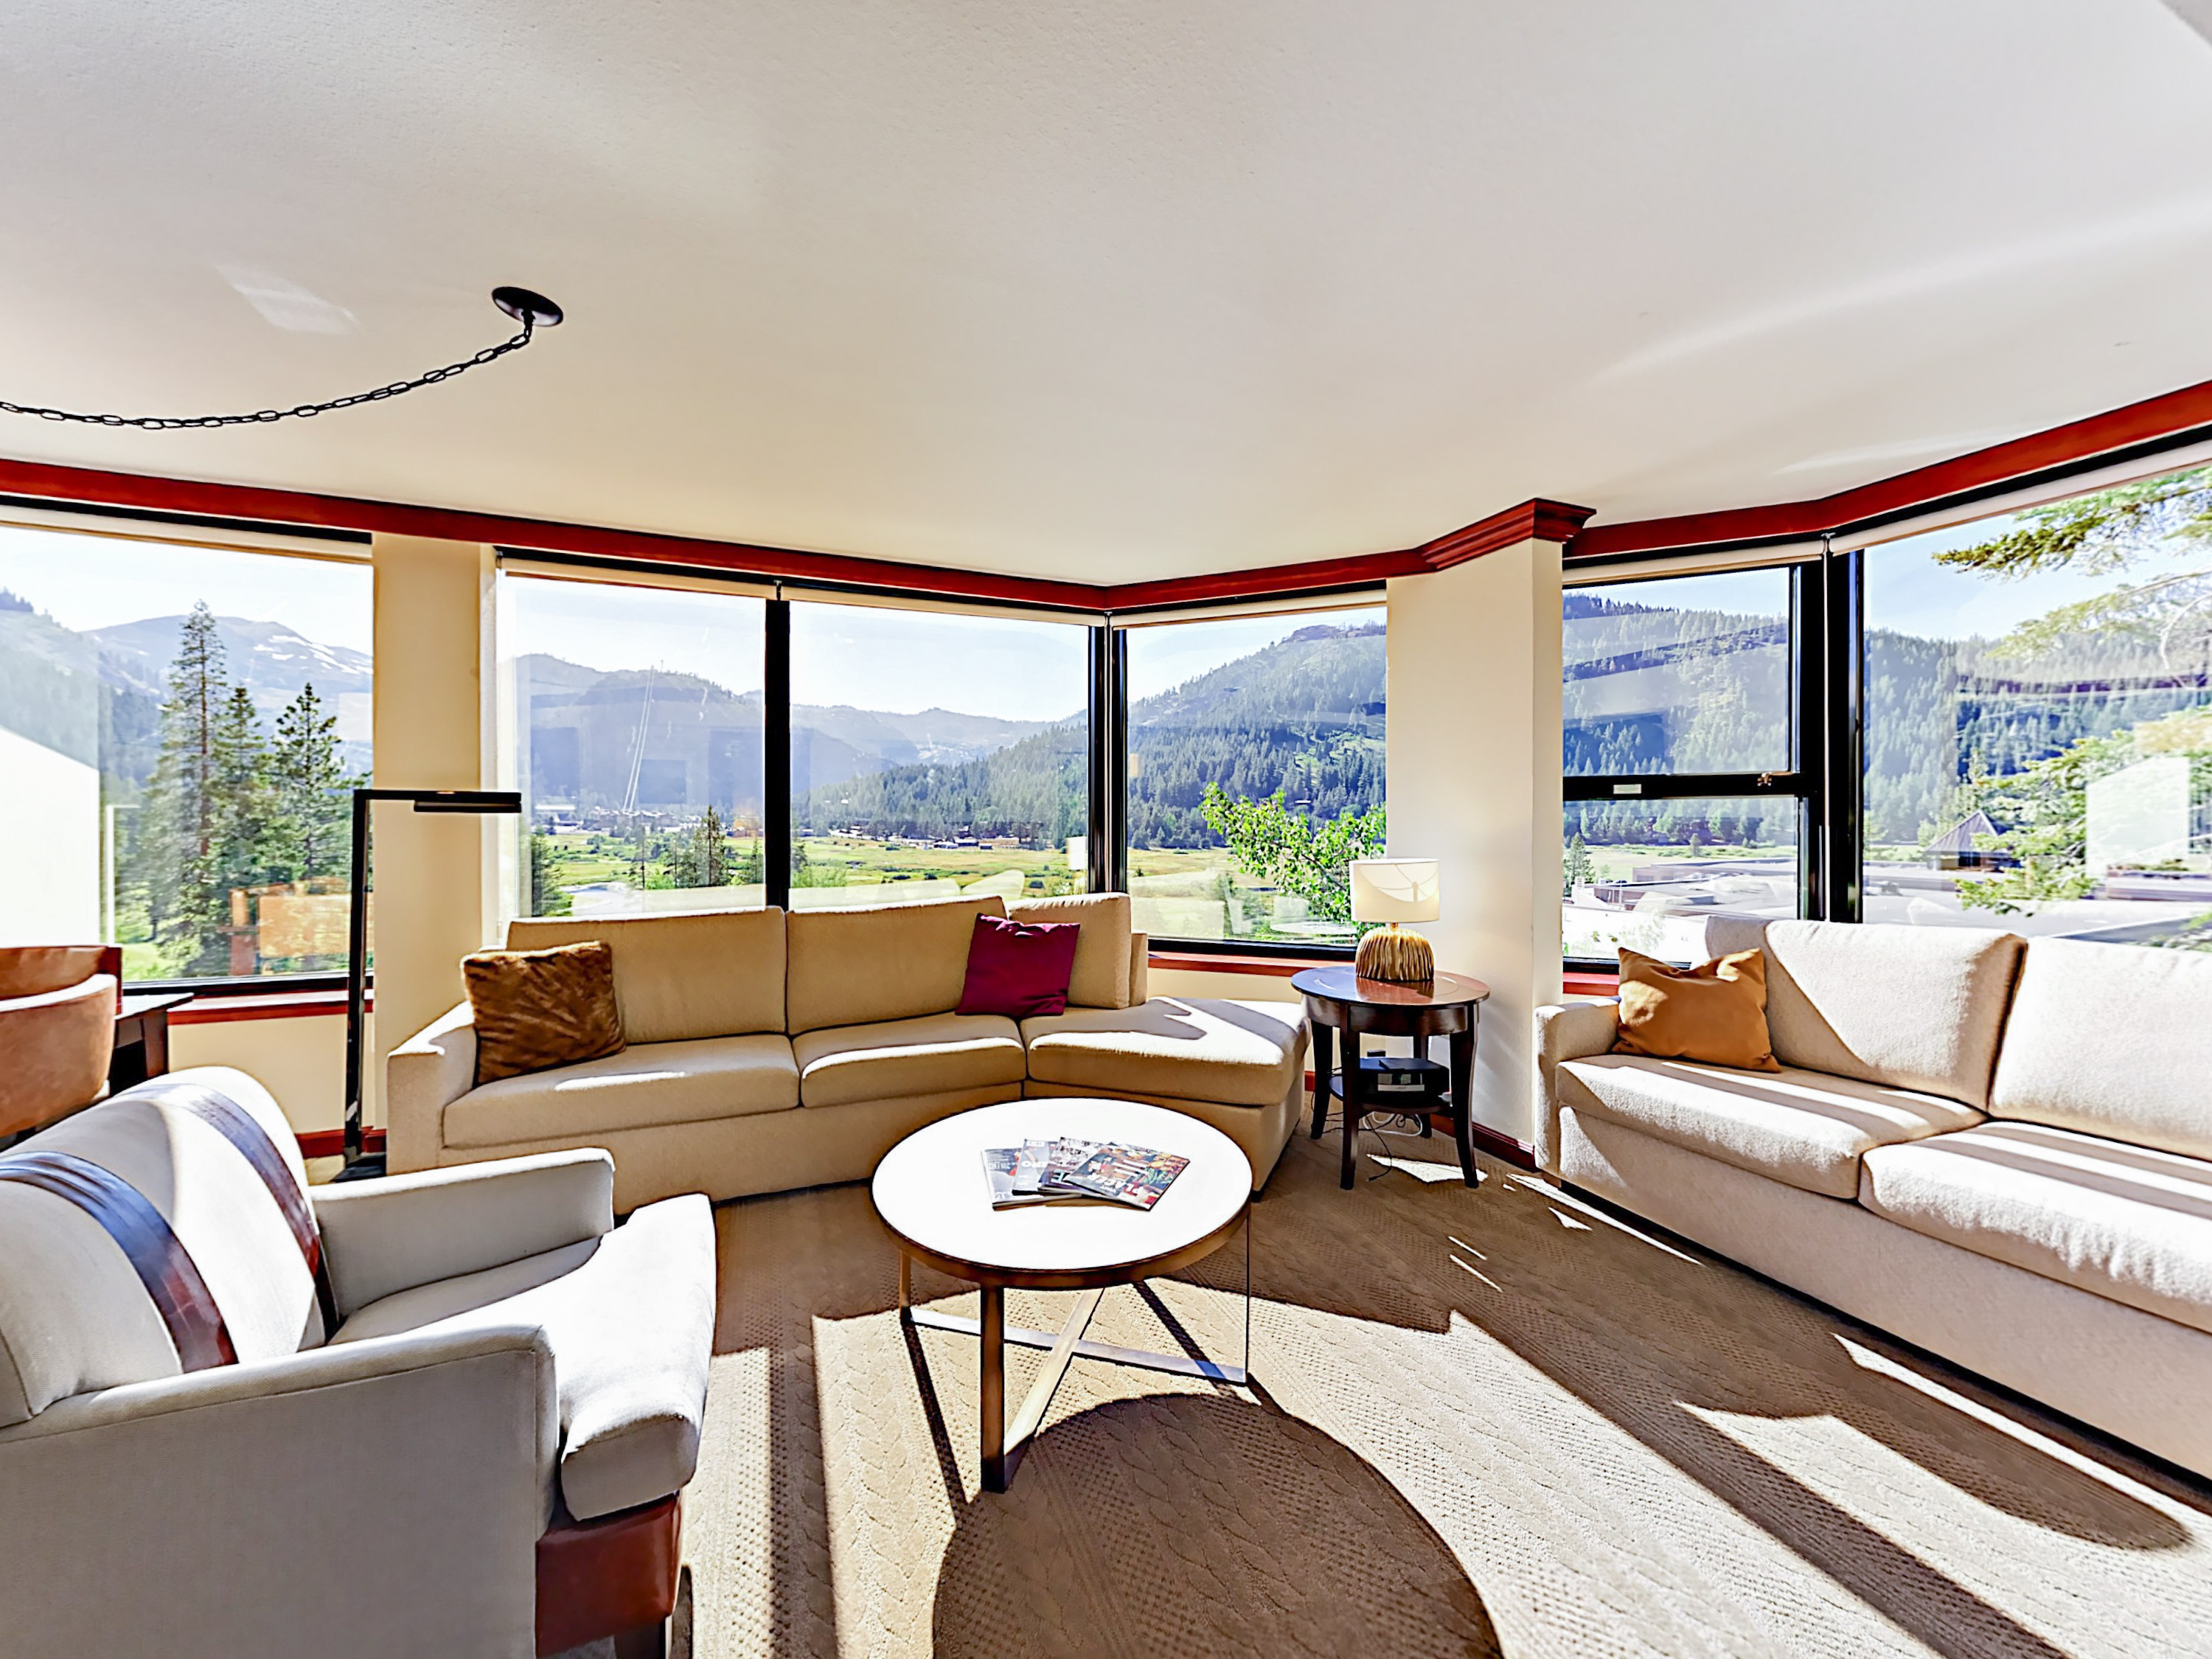 Olympic Valley CA Vacation Rental Welcome to your